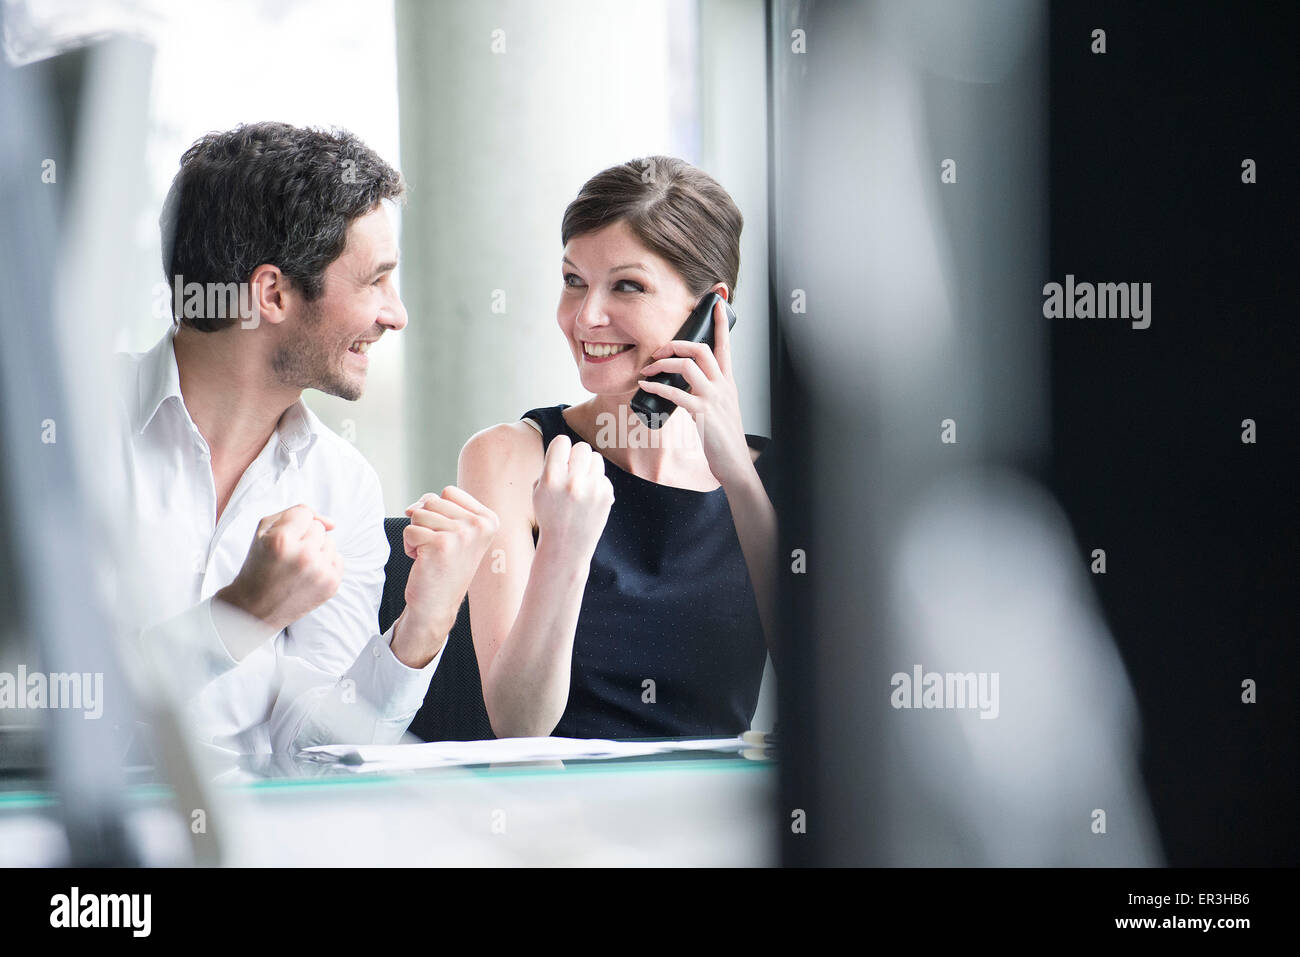 Business associates pleased by good news phone call - Stock Image